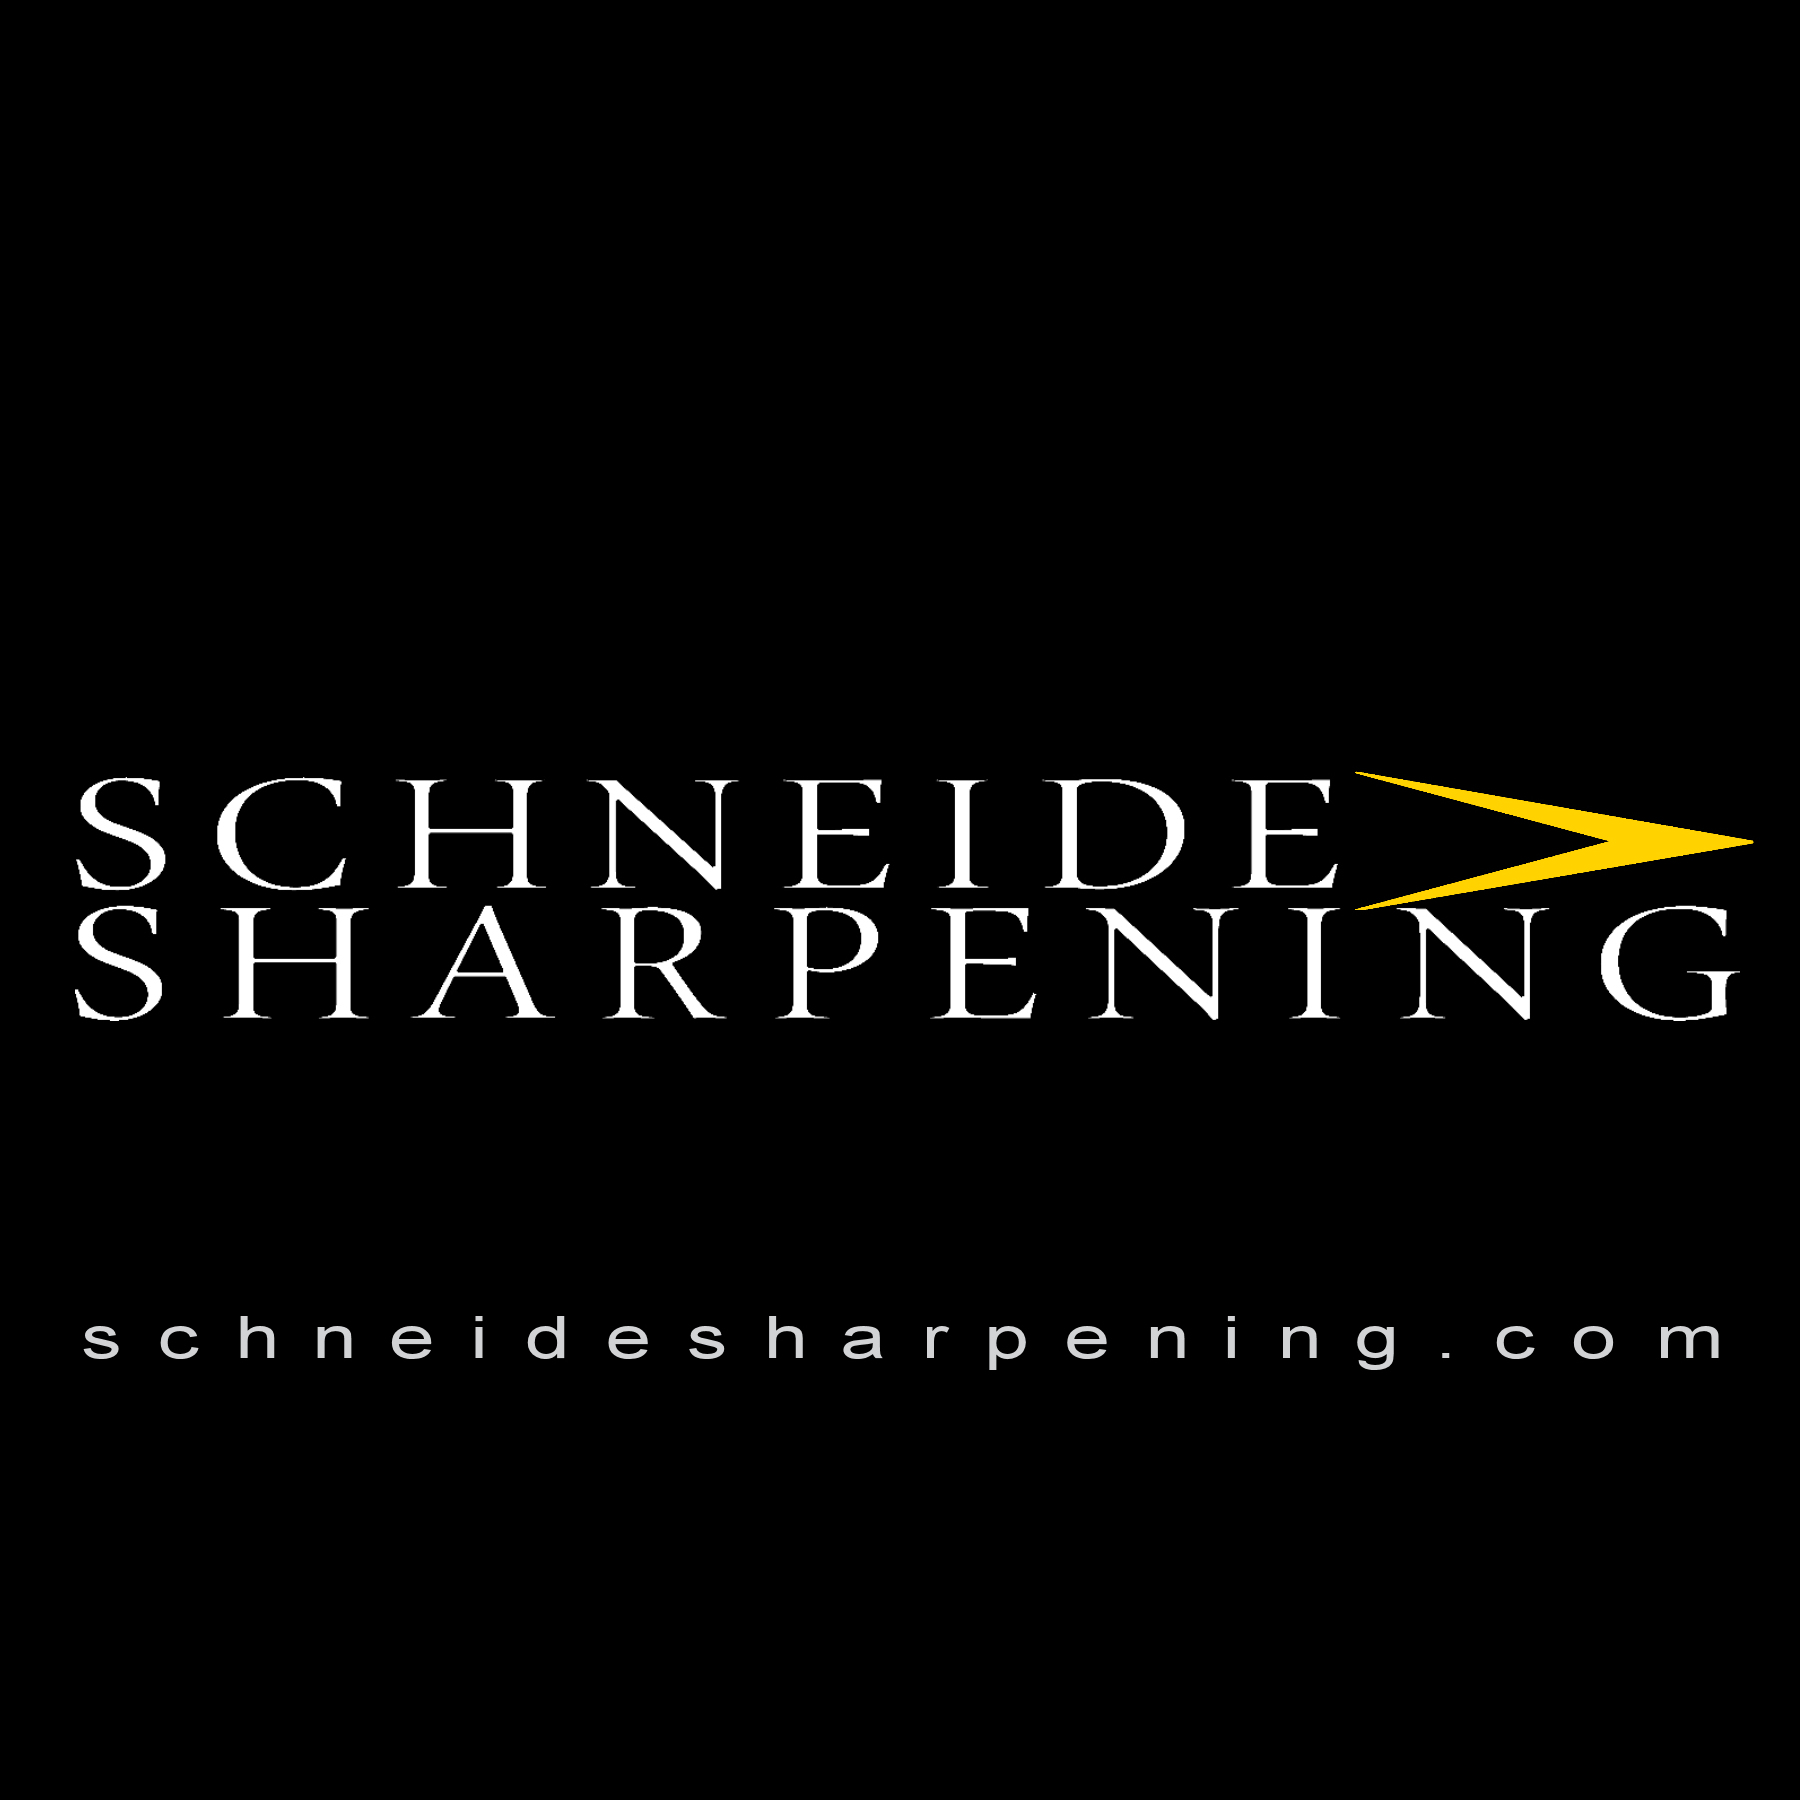 David-Ryan-Schneide-Sharpening-and-Sales-Main-Picture.jpg